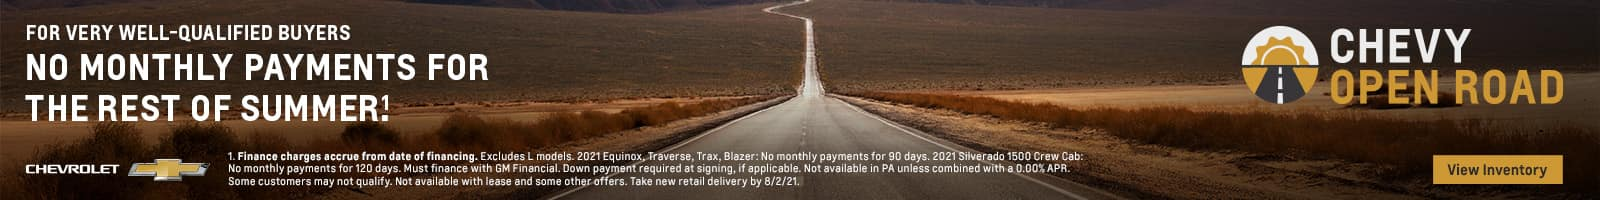 12_JULY_OPEN ROAD DEFERRAL GENERIC_NATIONAL1600x200_BANNER